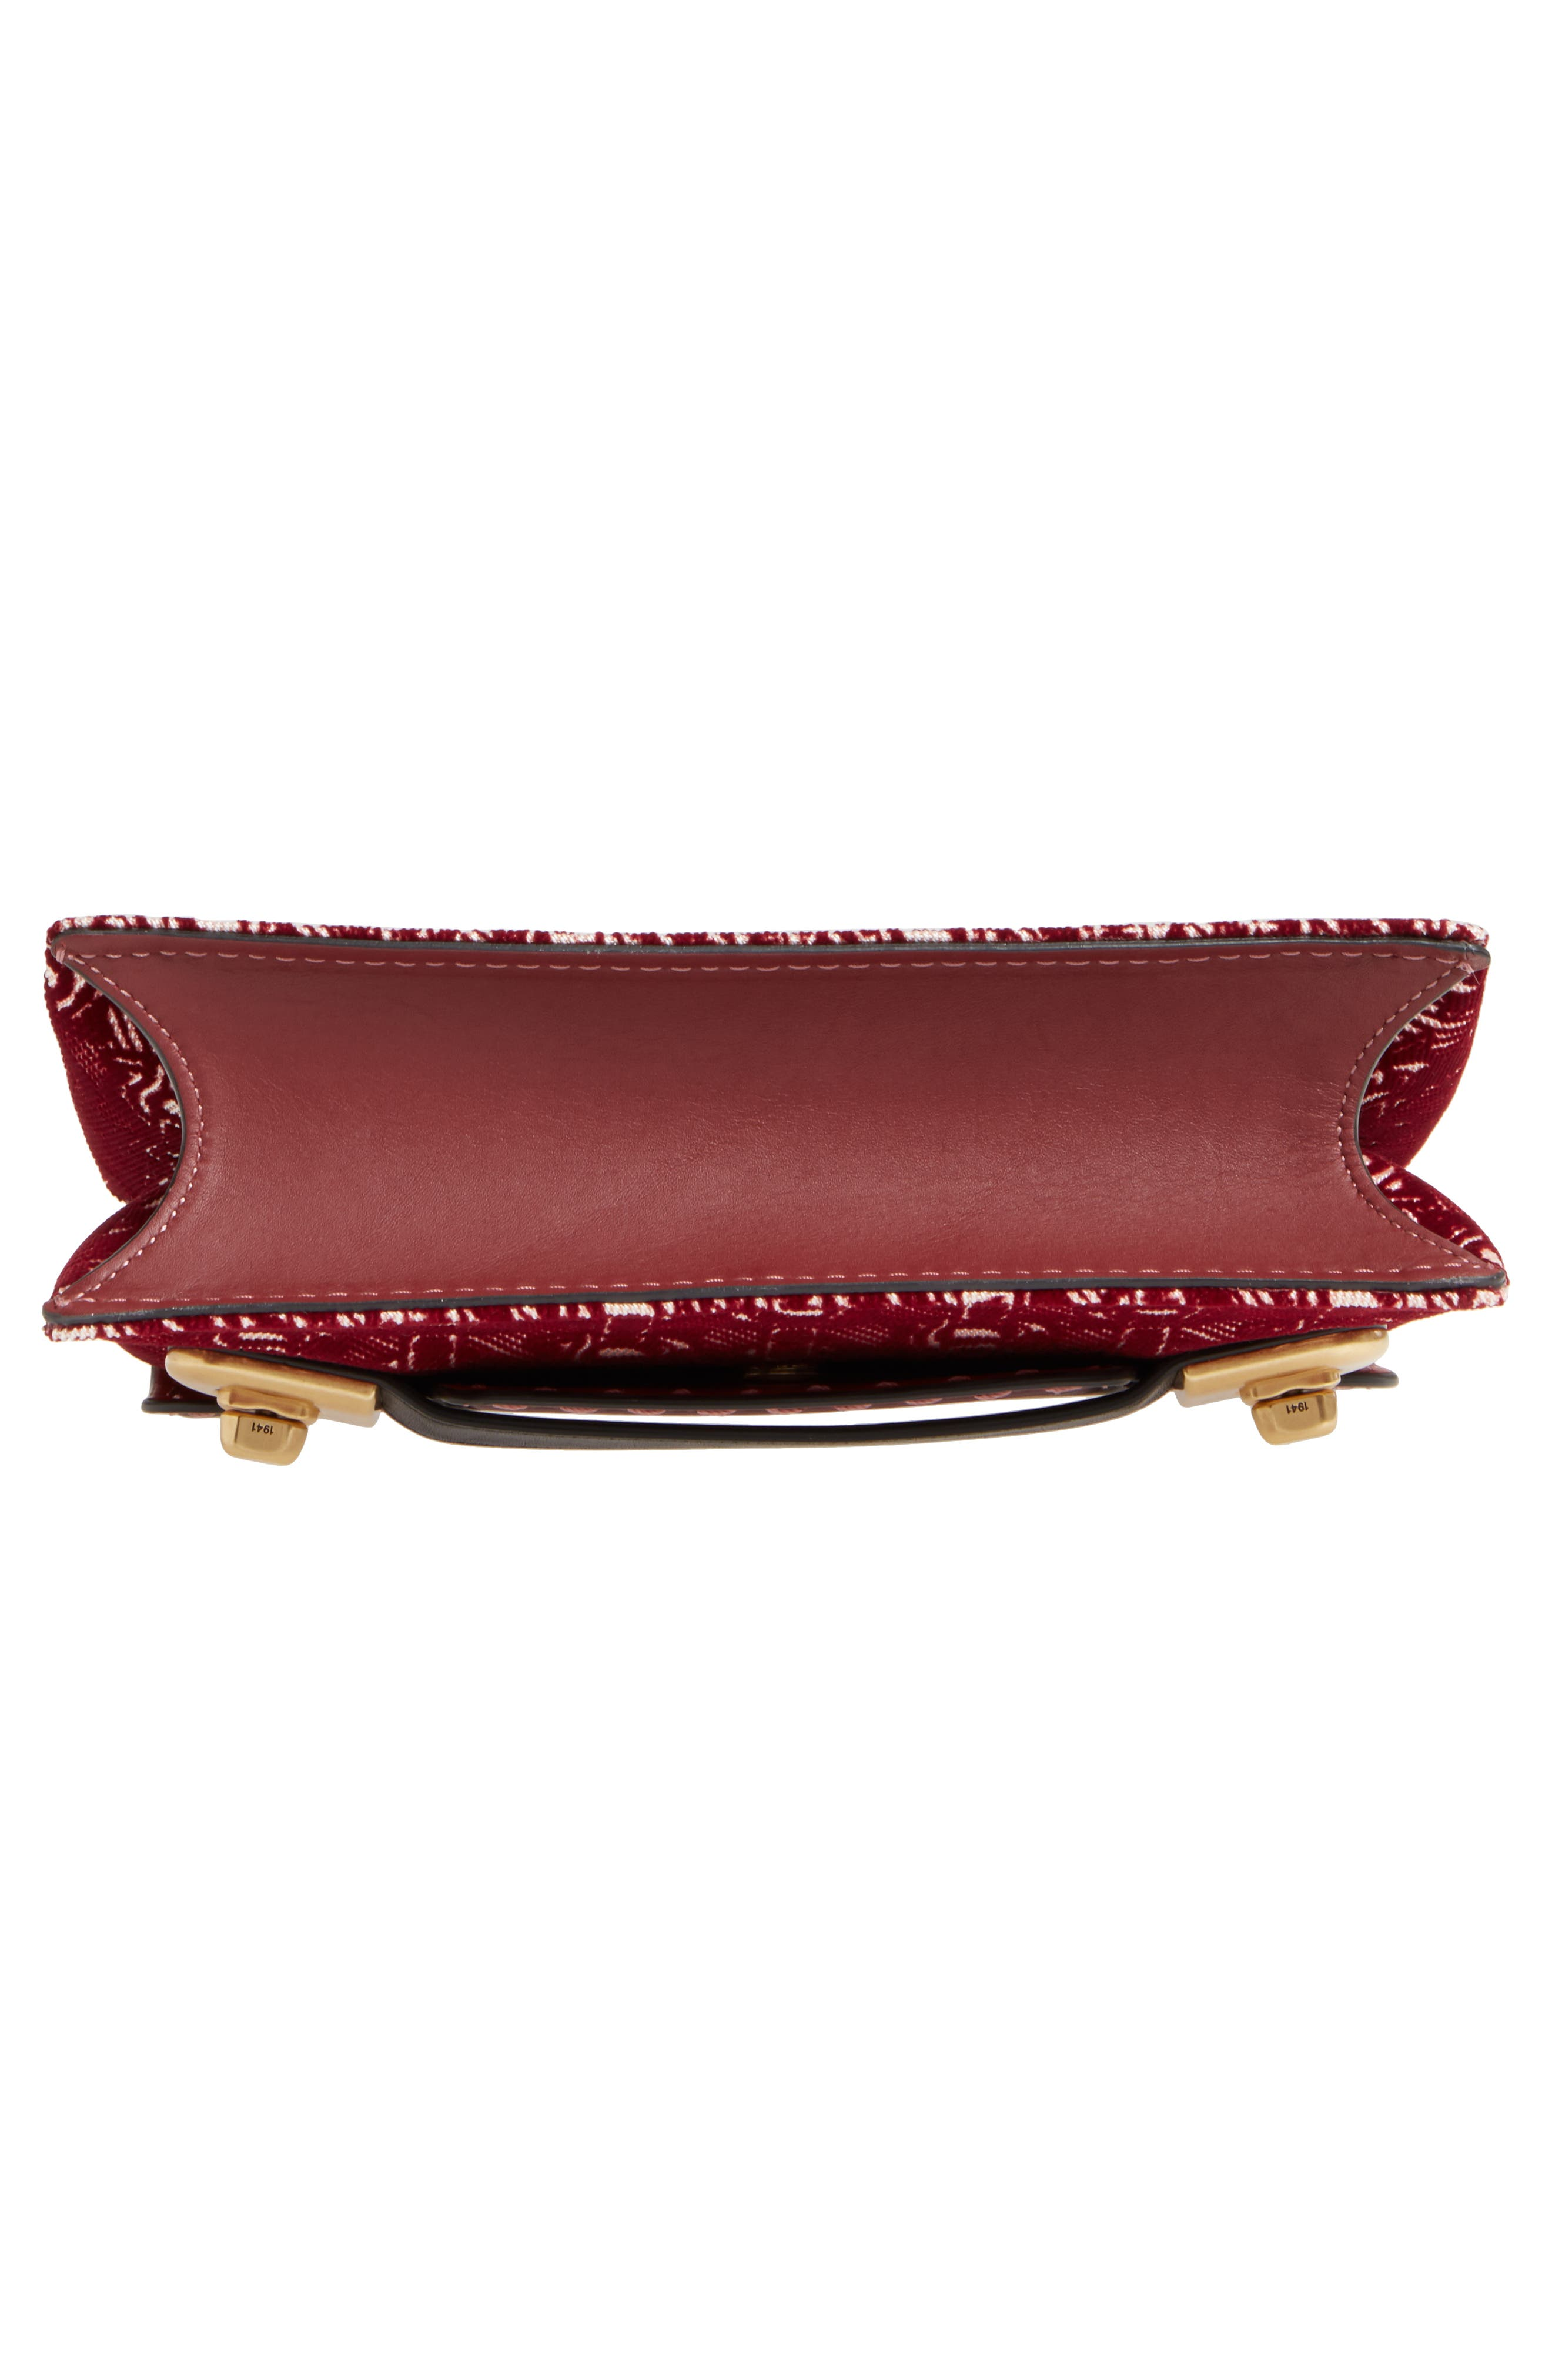 Swagger Chain Leather Crossbody Bag,                             Alternate thumbnail 6, color,                             Bordeaux